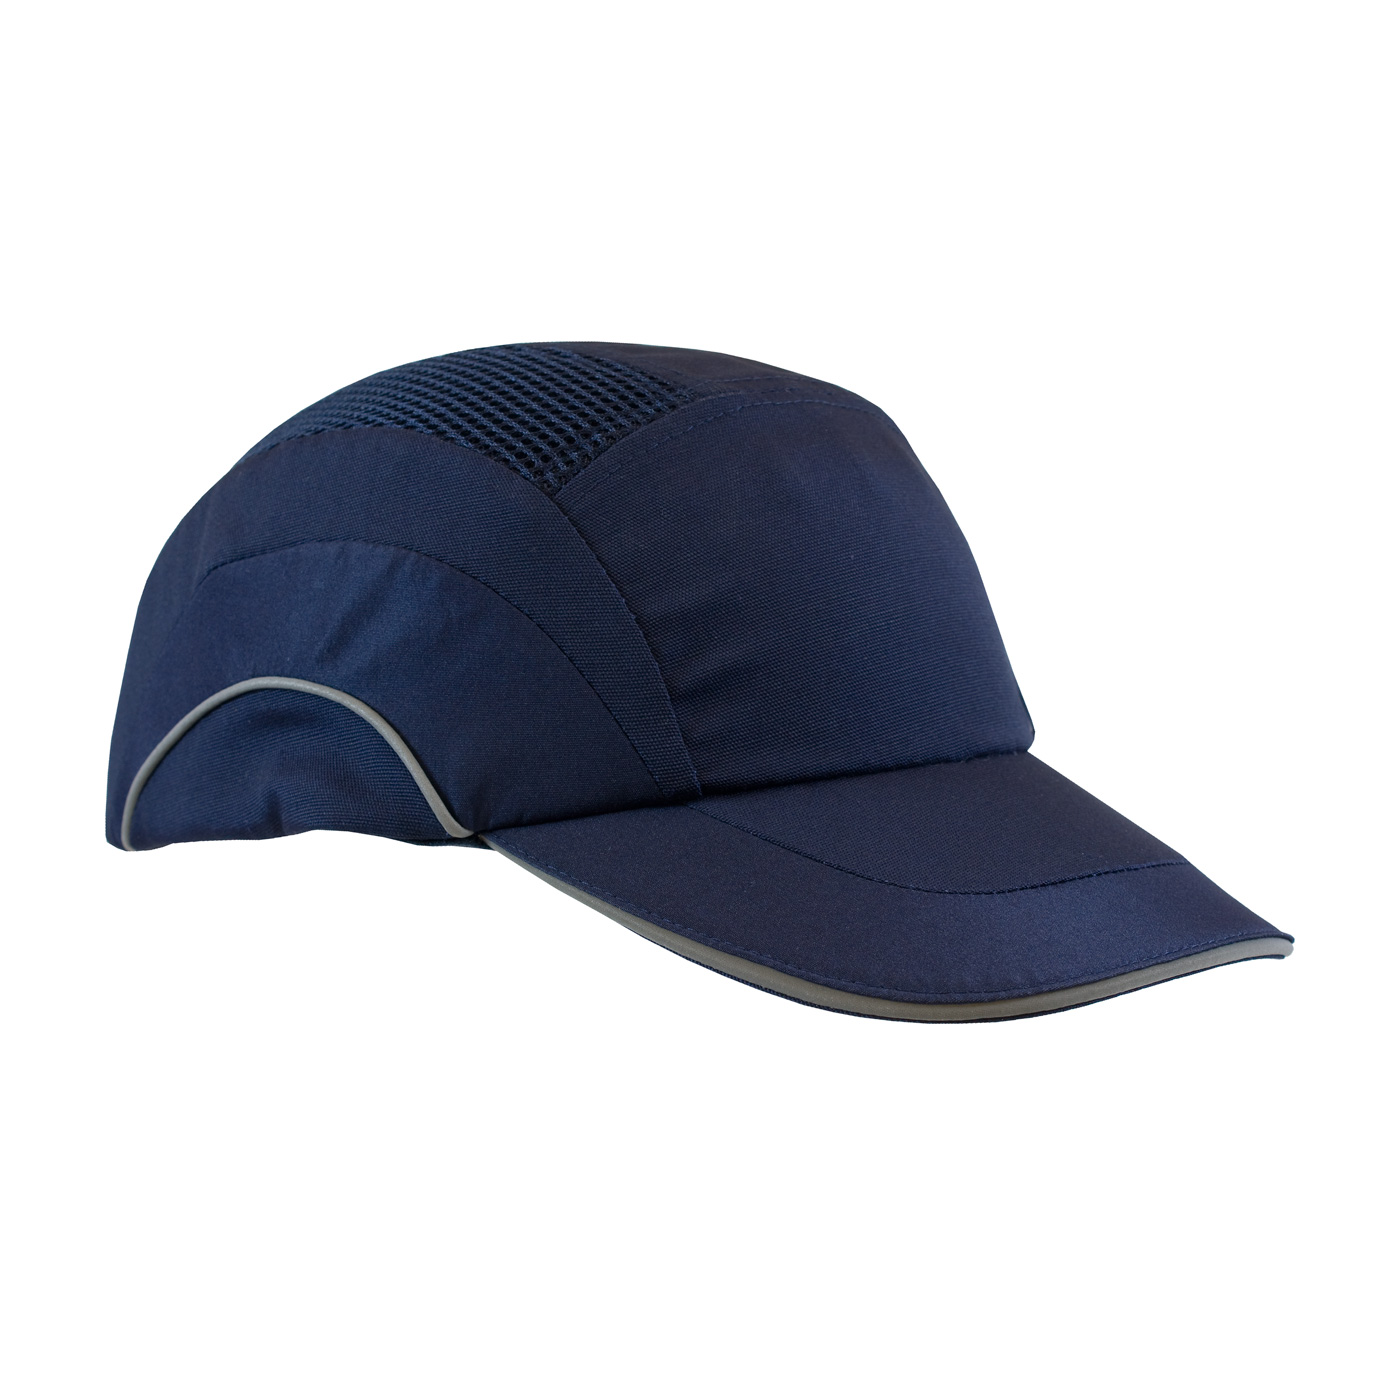 Baseball Style Bump Cap with HDPE Protective Liner and Adjustable Back, Navy, OS